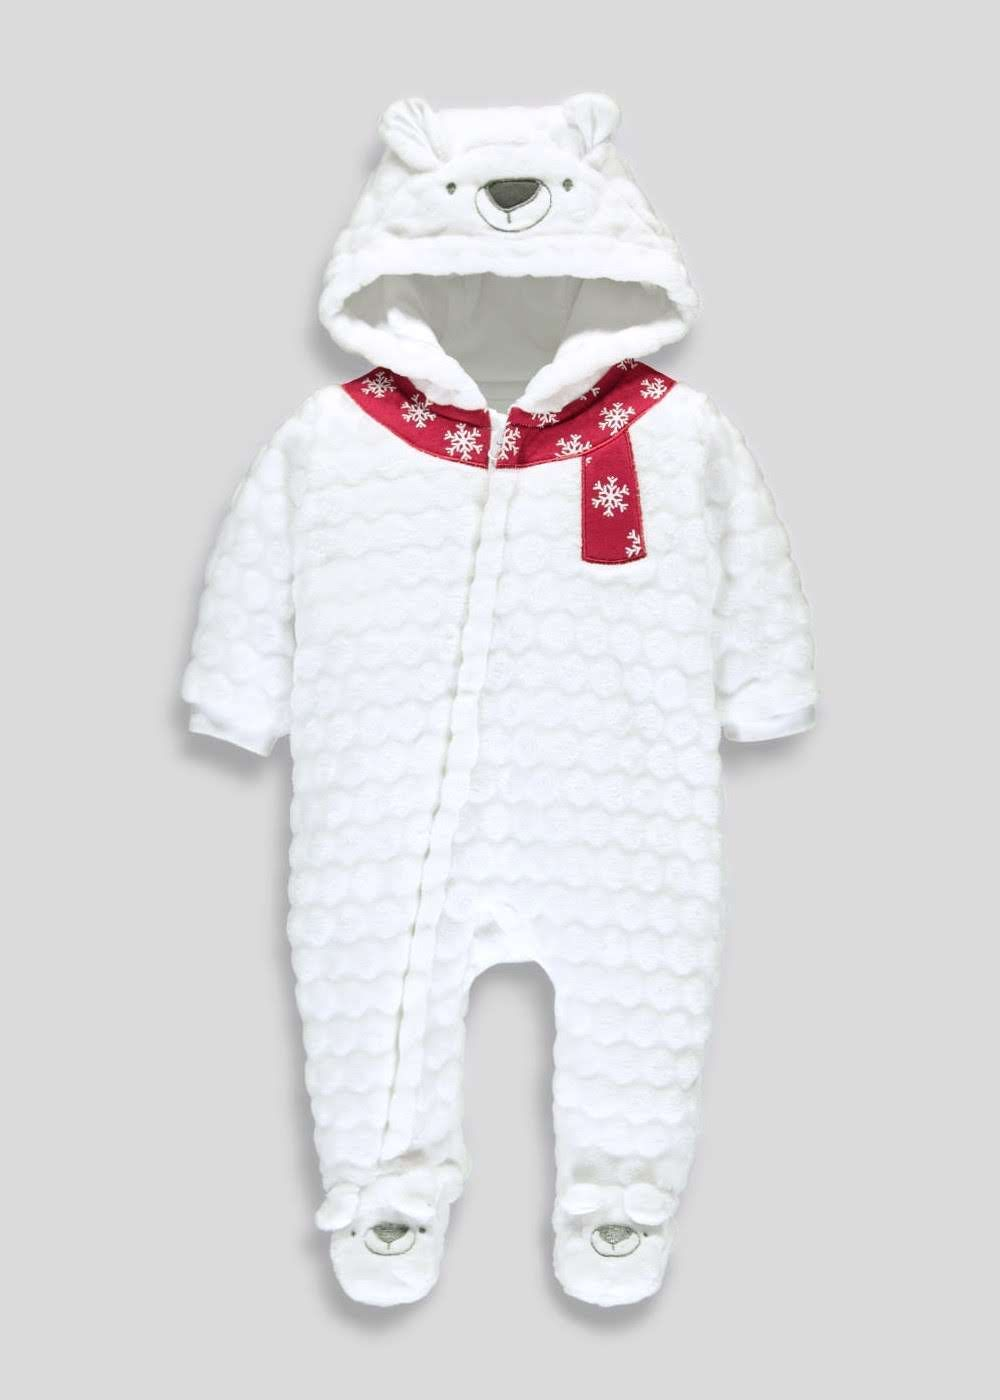 ca5e67b81 Unisex Novelty Christmas Polar Bear Outfit (Newborn-12mths) View 1 ...